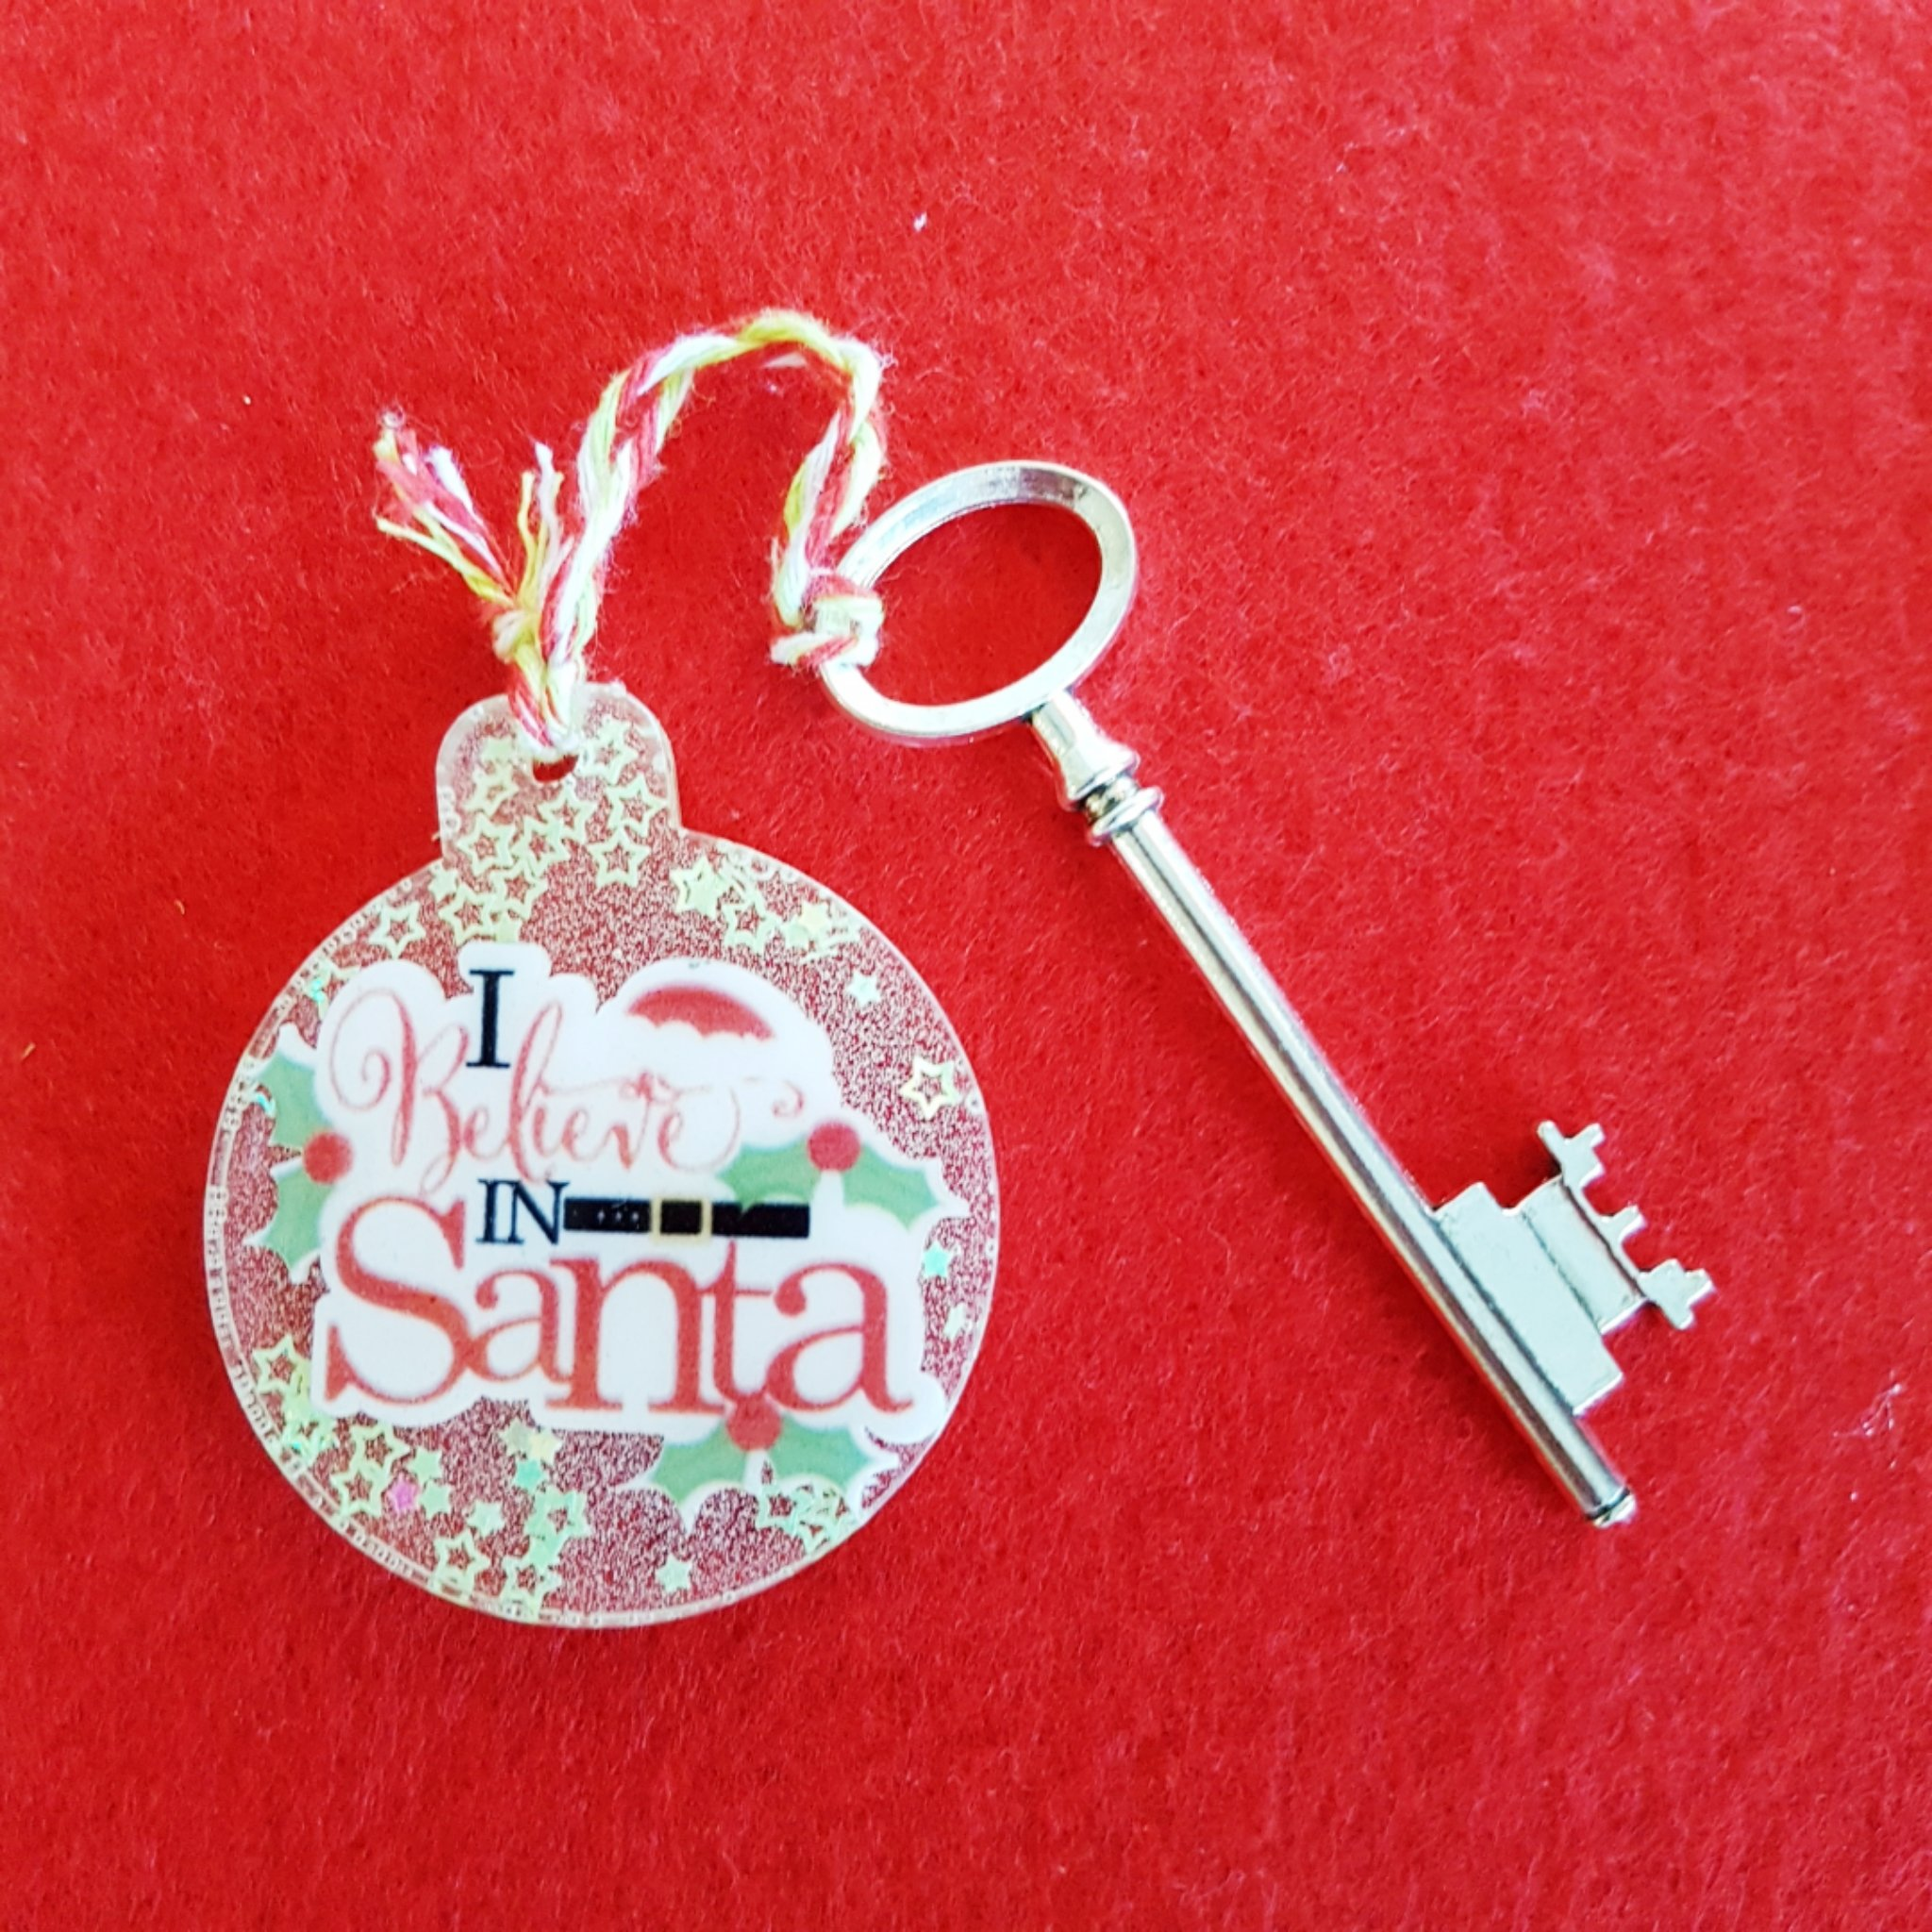 Santa's magic key 00285